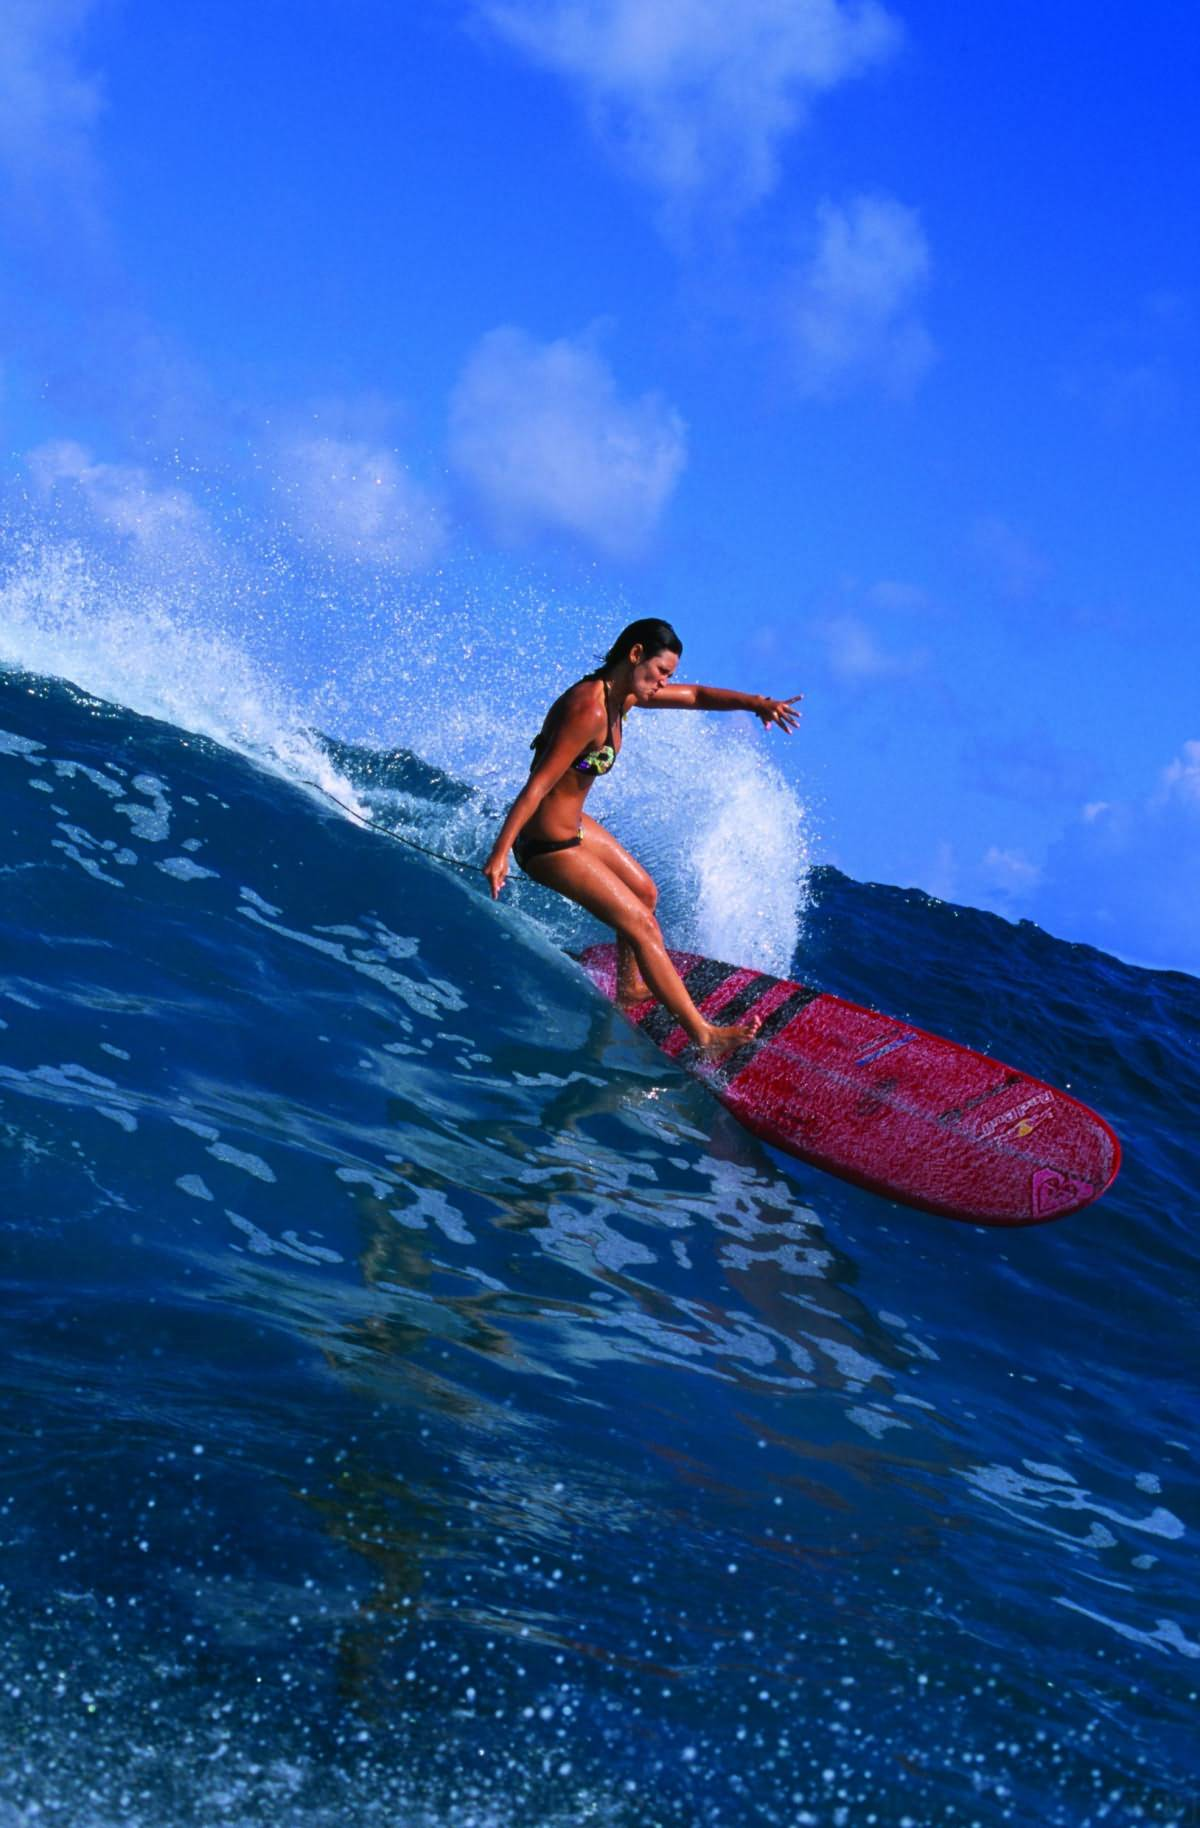 Girl Surfing Photos and Video   XarJ Blog and Podcast 1200x1828